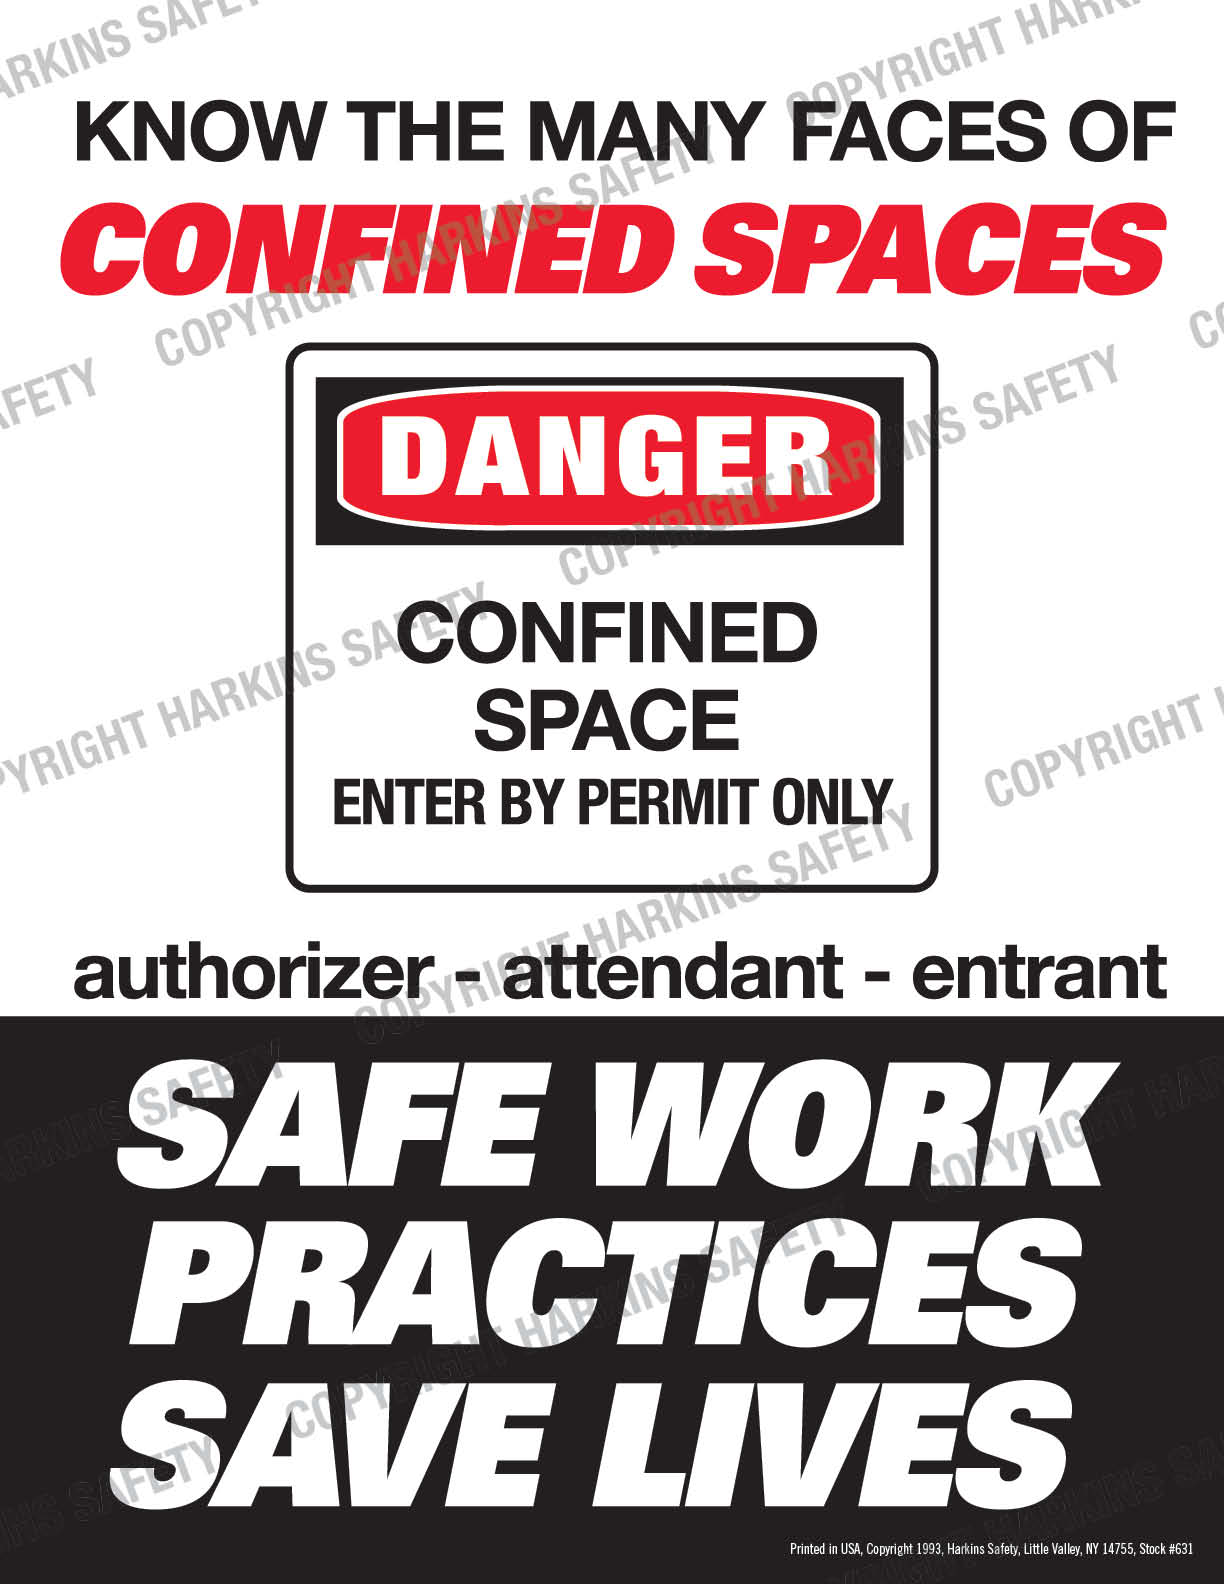 Know The Many Faces Of Confined Spaces (Poster)